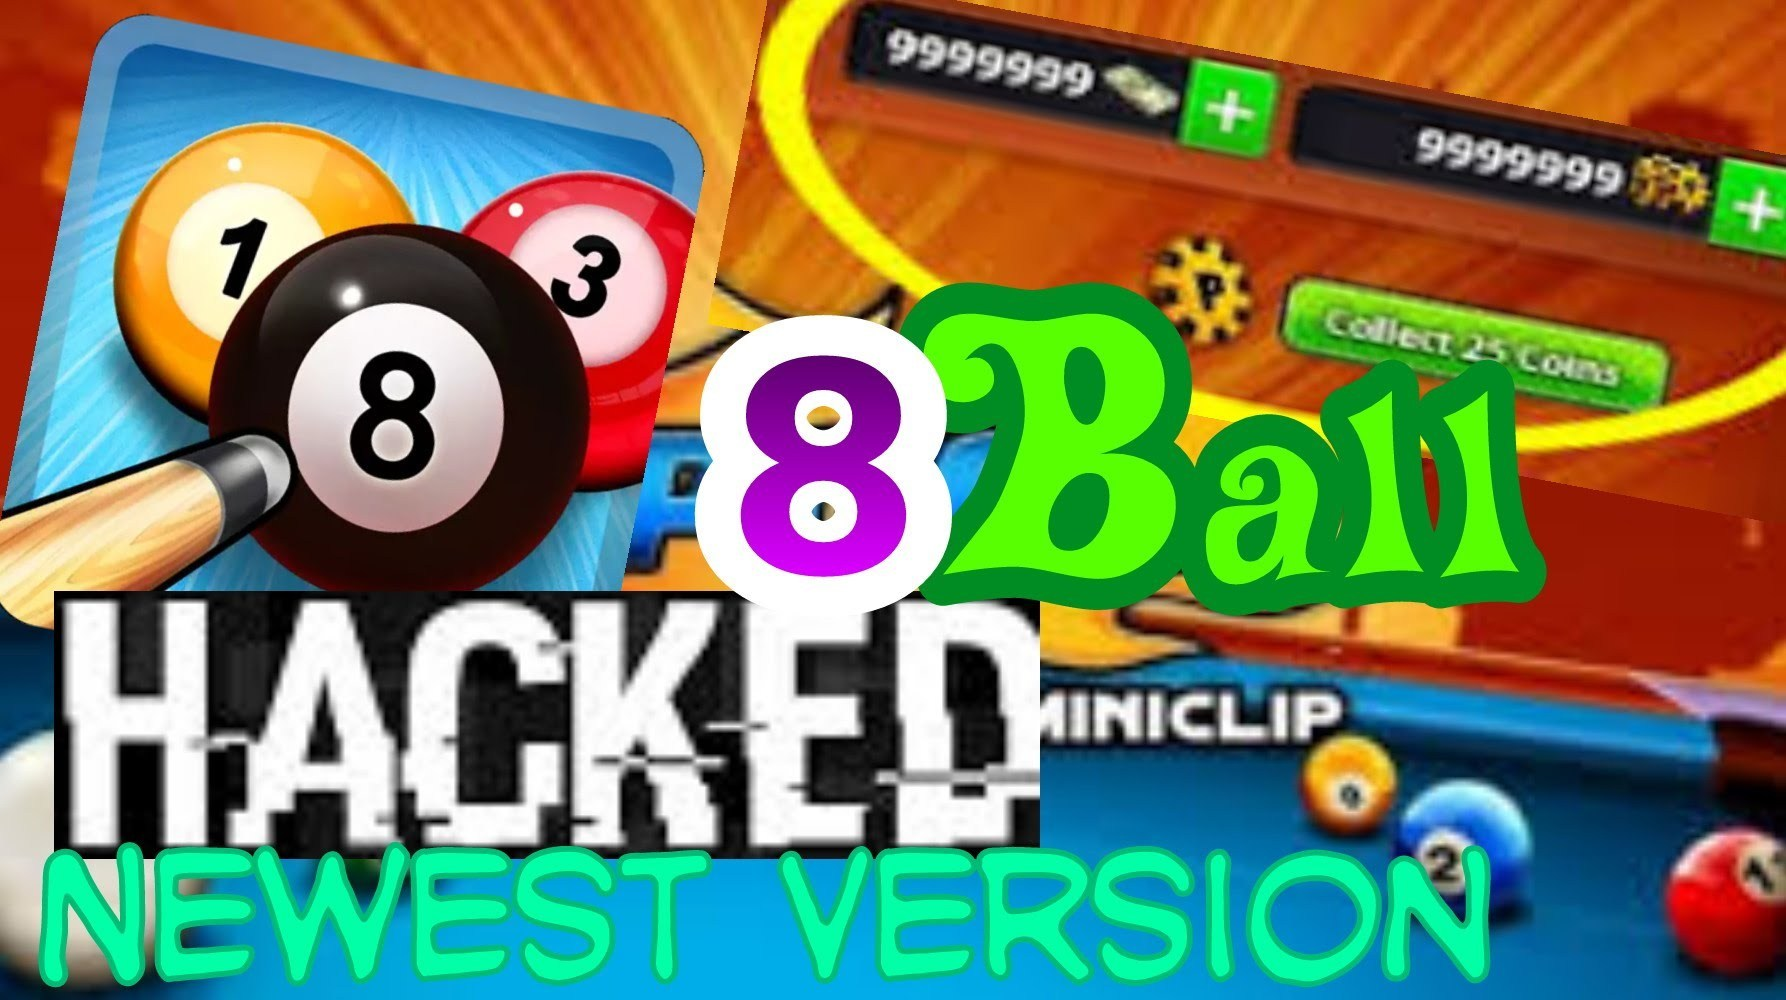 8 ball pool games hack app